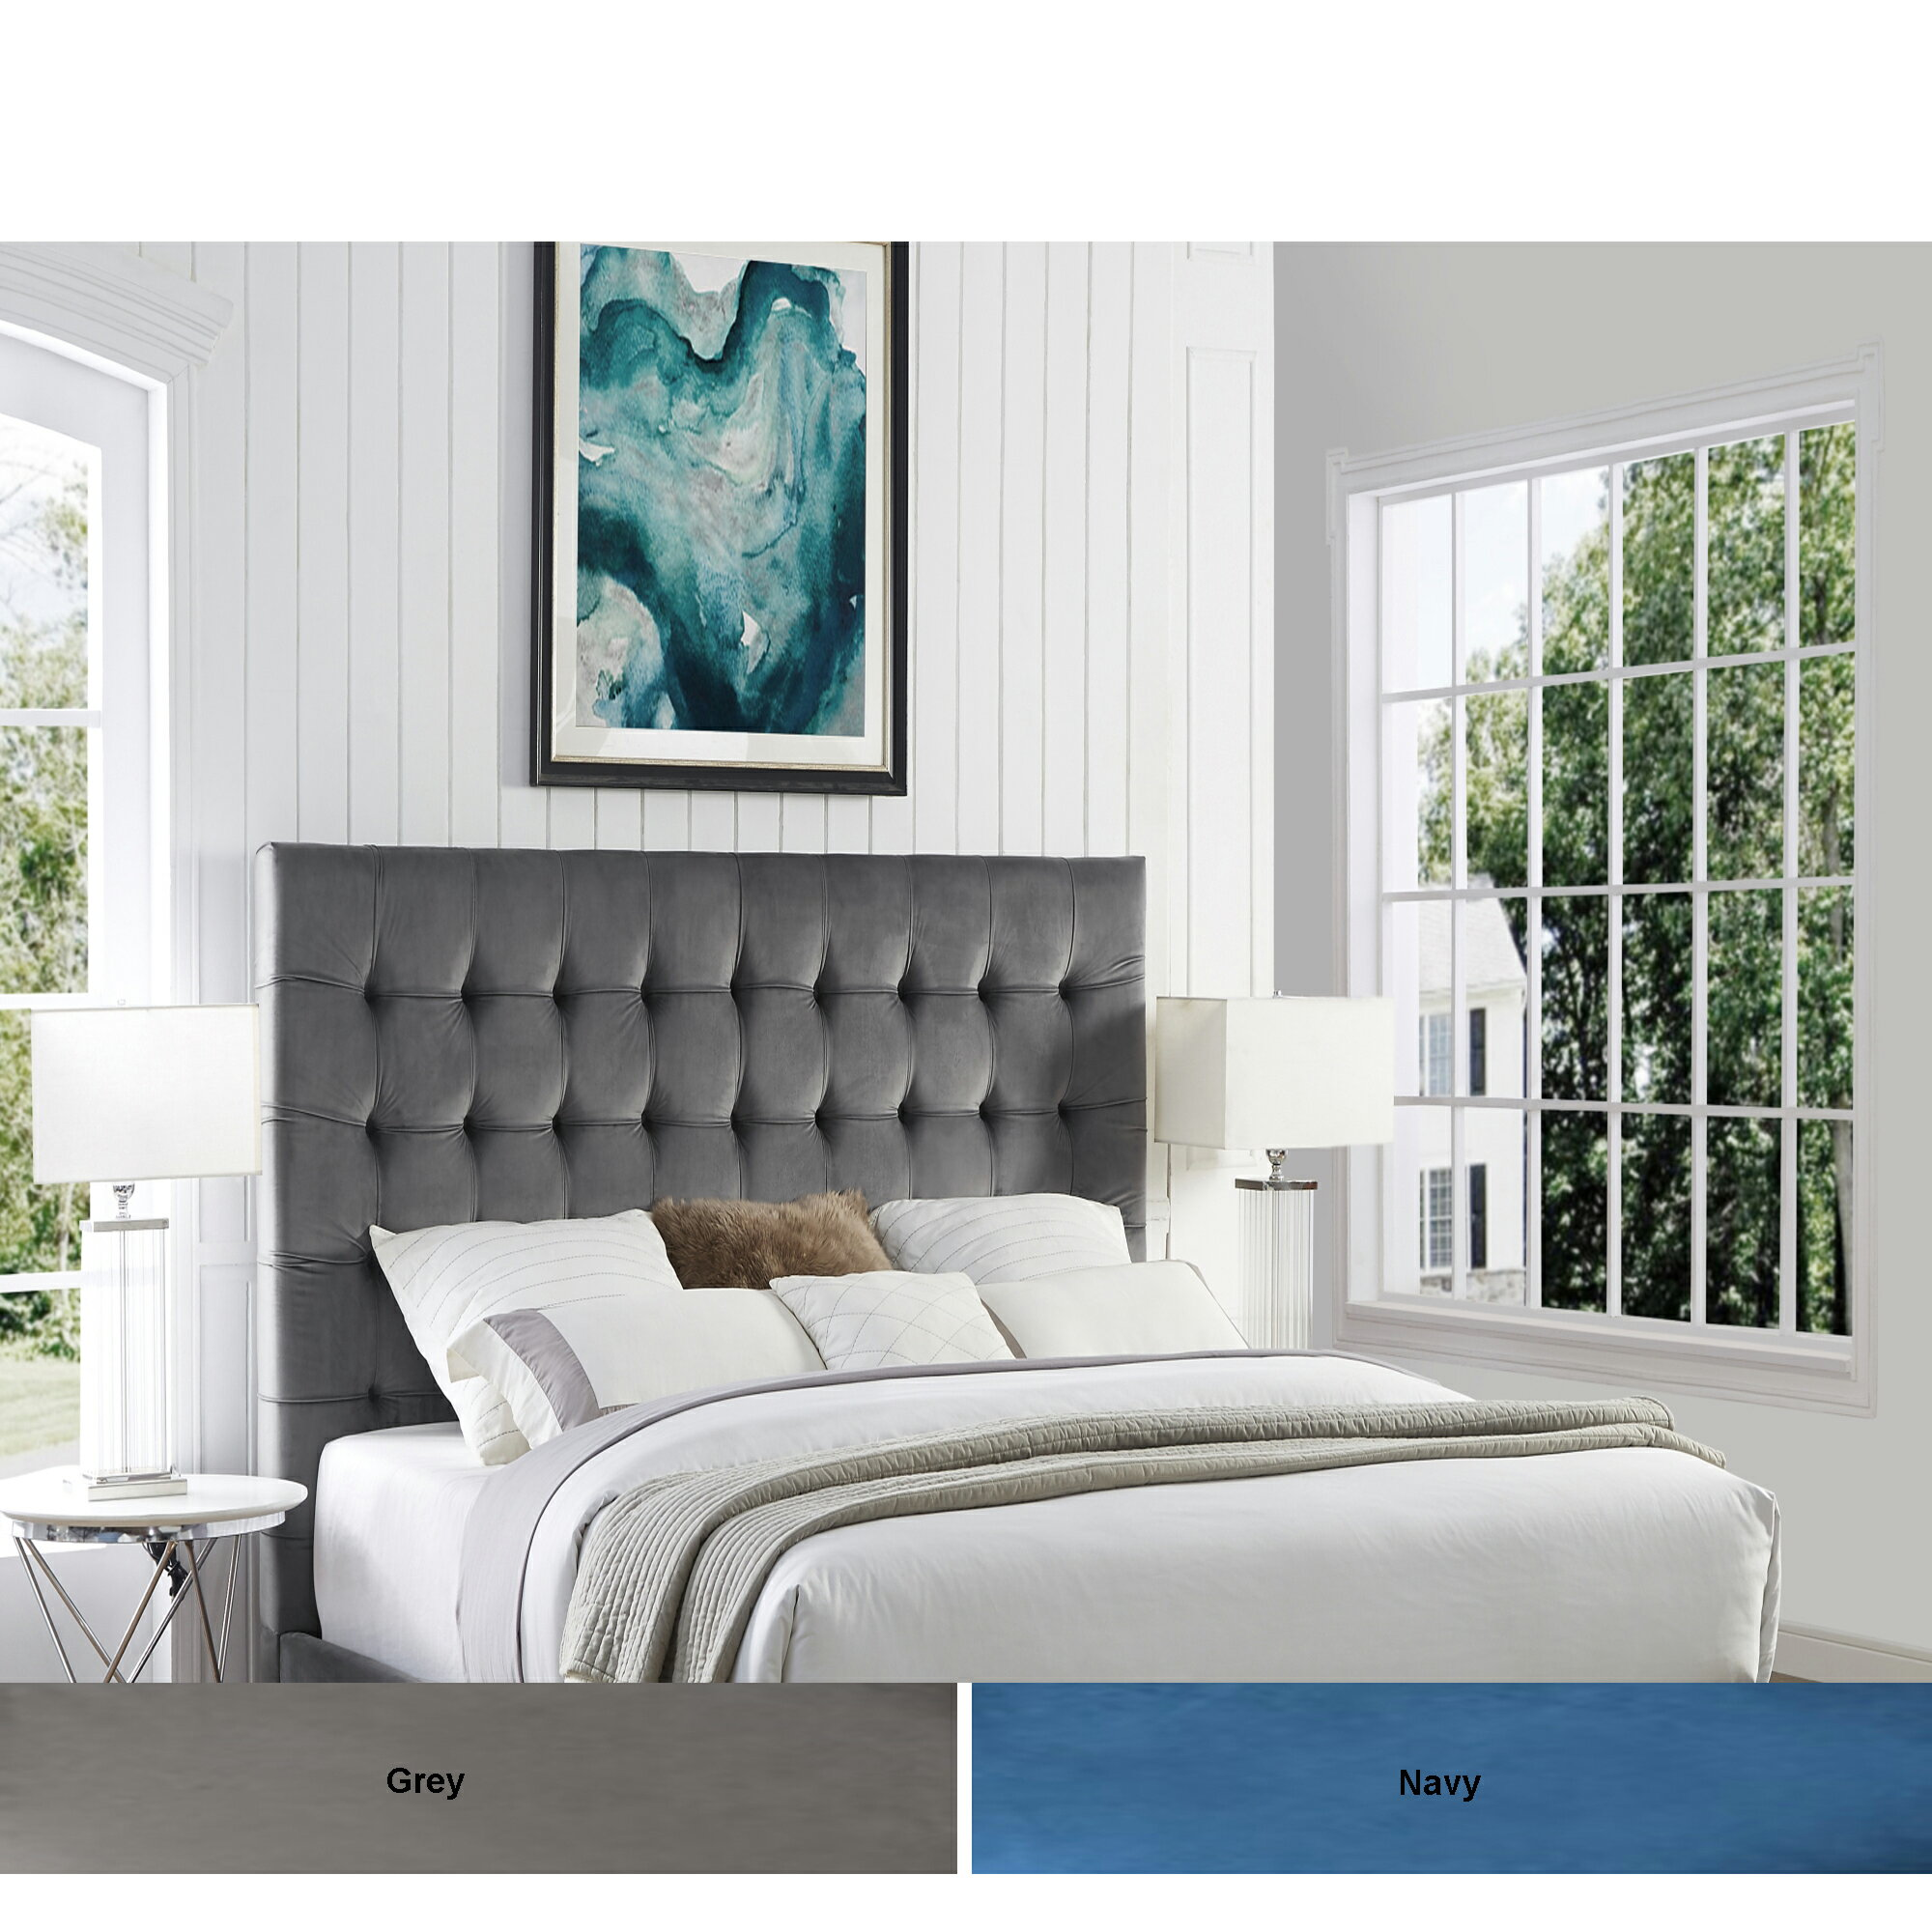 Georges Velvet Or Linen Tufted Headboard Queen Or King Size Upholstered Modern And Contemporary Inspired Home